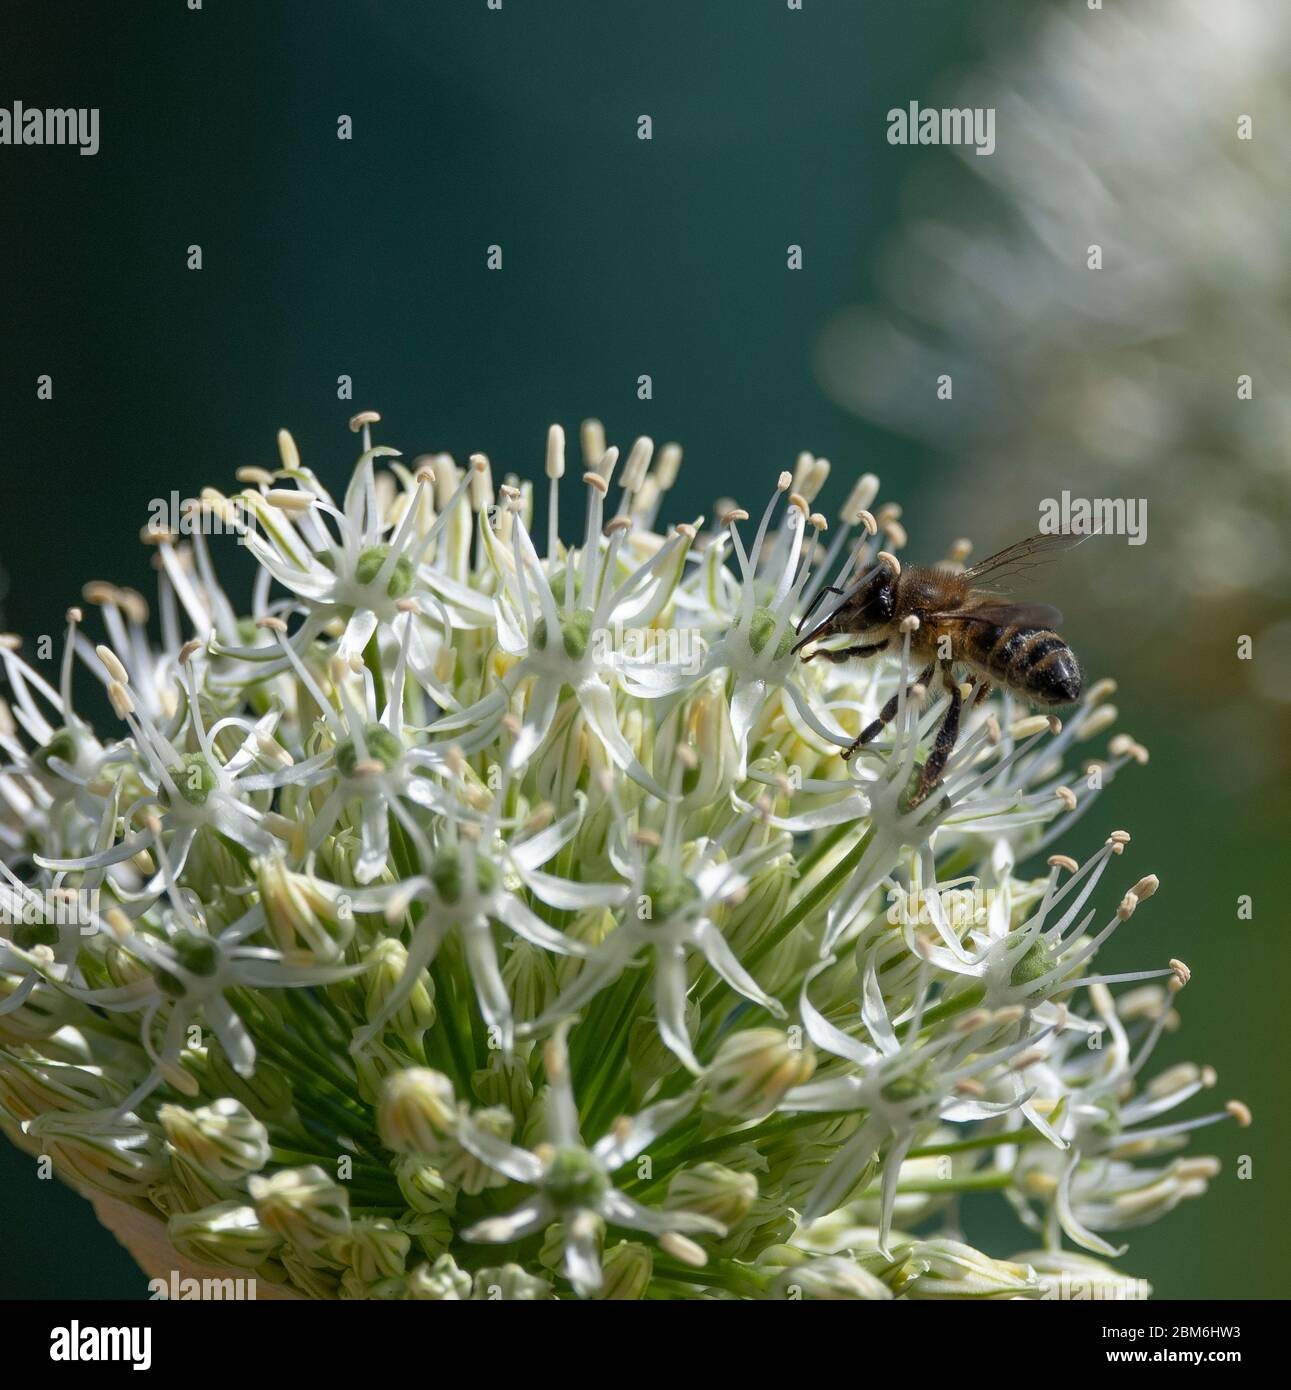 London, UK. 7 May 2020. Coronavirus lockdown day 45, garden watch. A Honey Bee collects nectar from large 'White Giant' Allium flowers in a sunny London garden. Credit: Malcolm Park/Alamy Live News Stock Photo